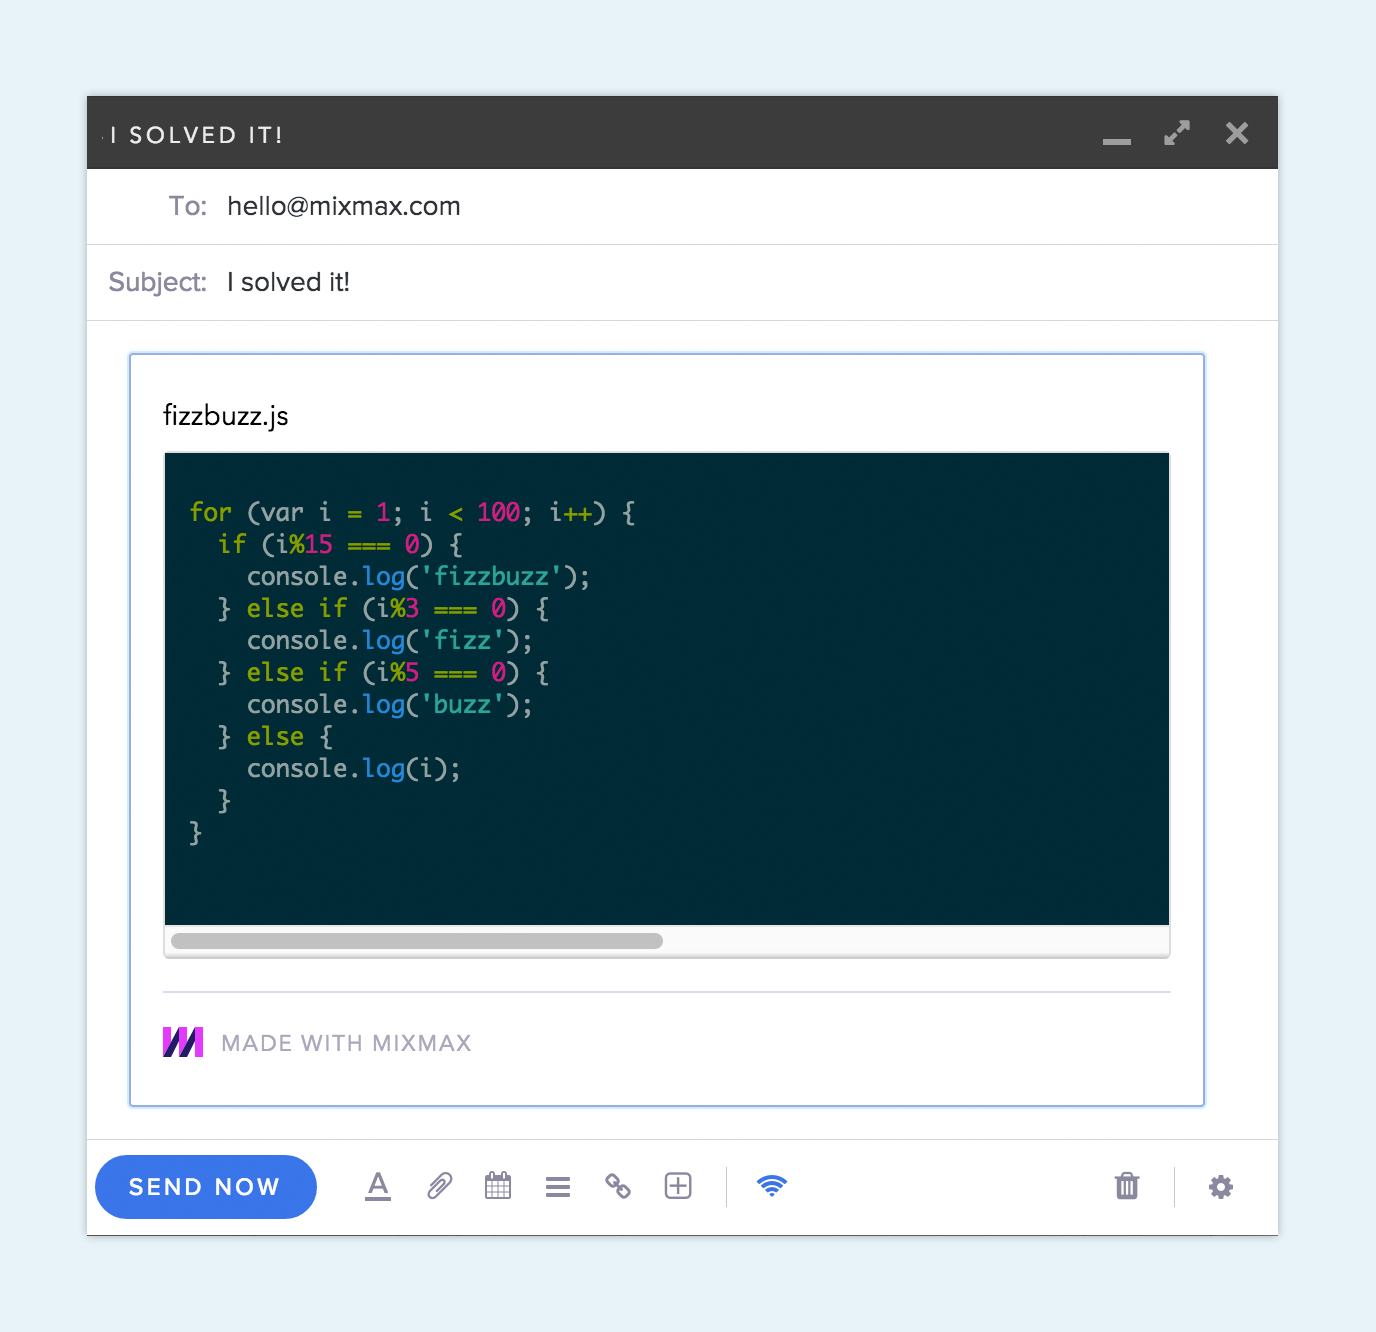 Another code snippet with dark mode